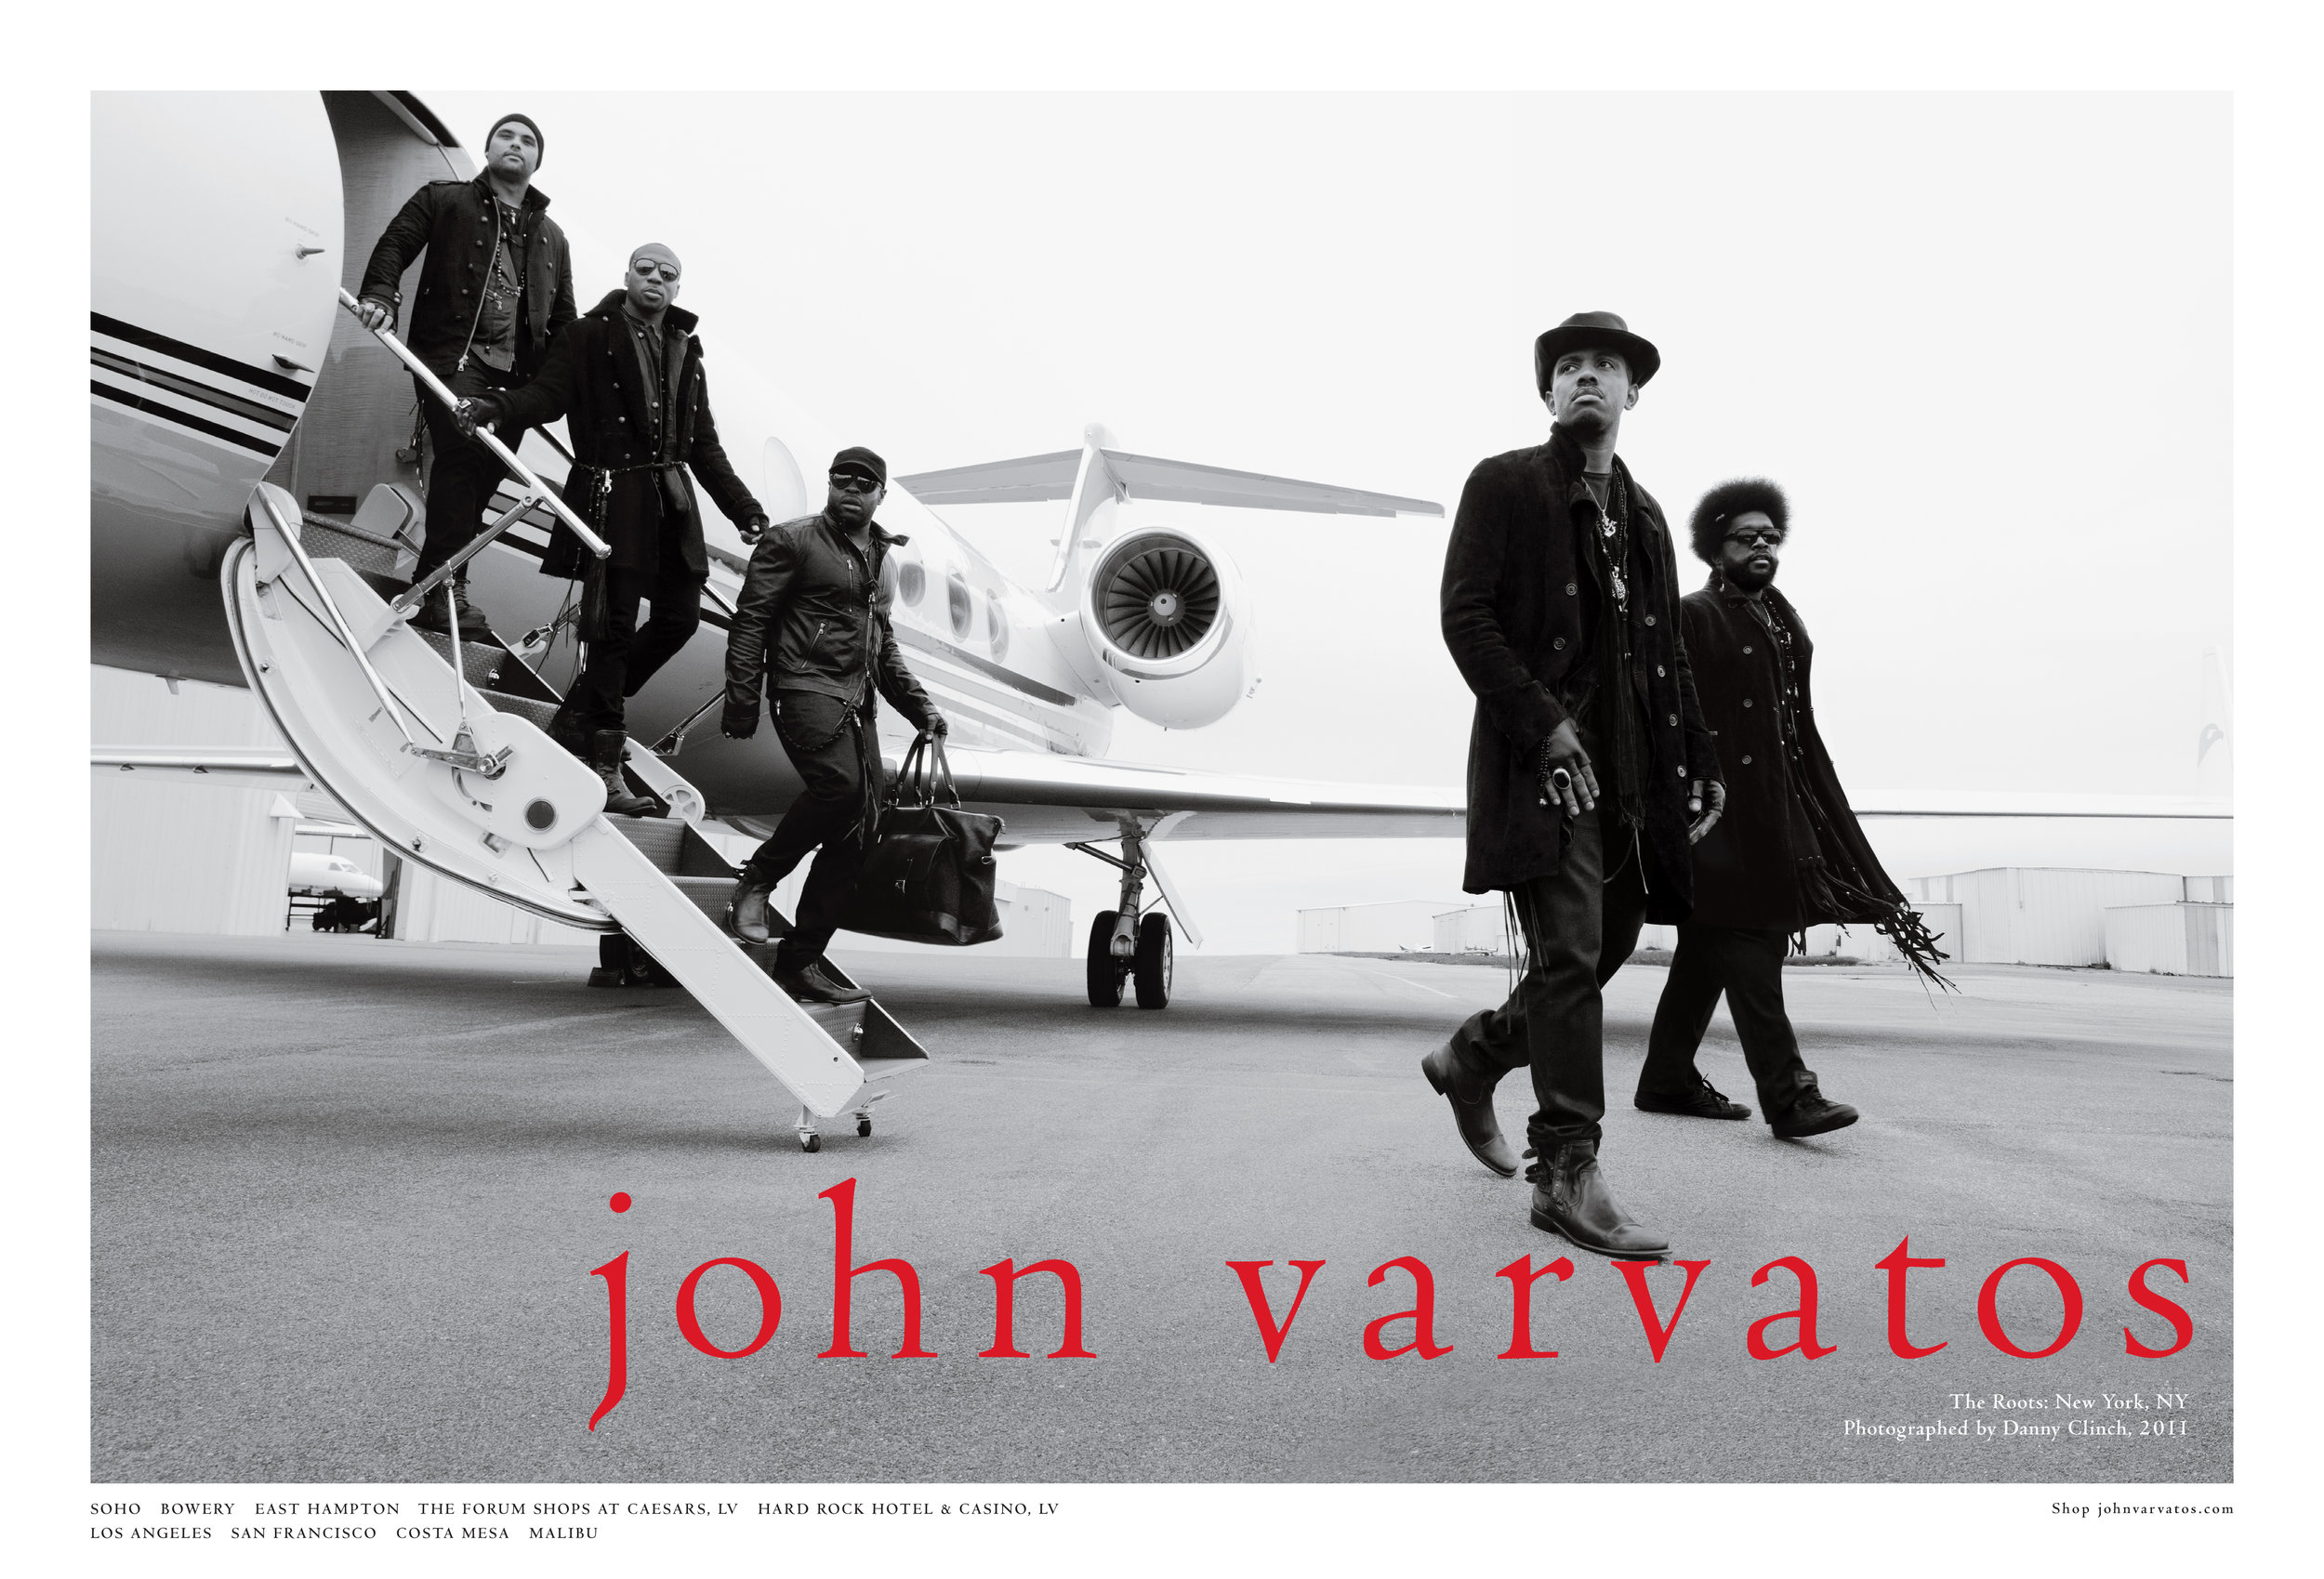 john_varvatos_roots_Questlove_Black_Thought_Black_Thought_Rebecca_Pietri_Stylist_Clinch_Photographer_Advertising _Private_Jet.jpg